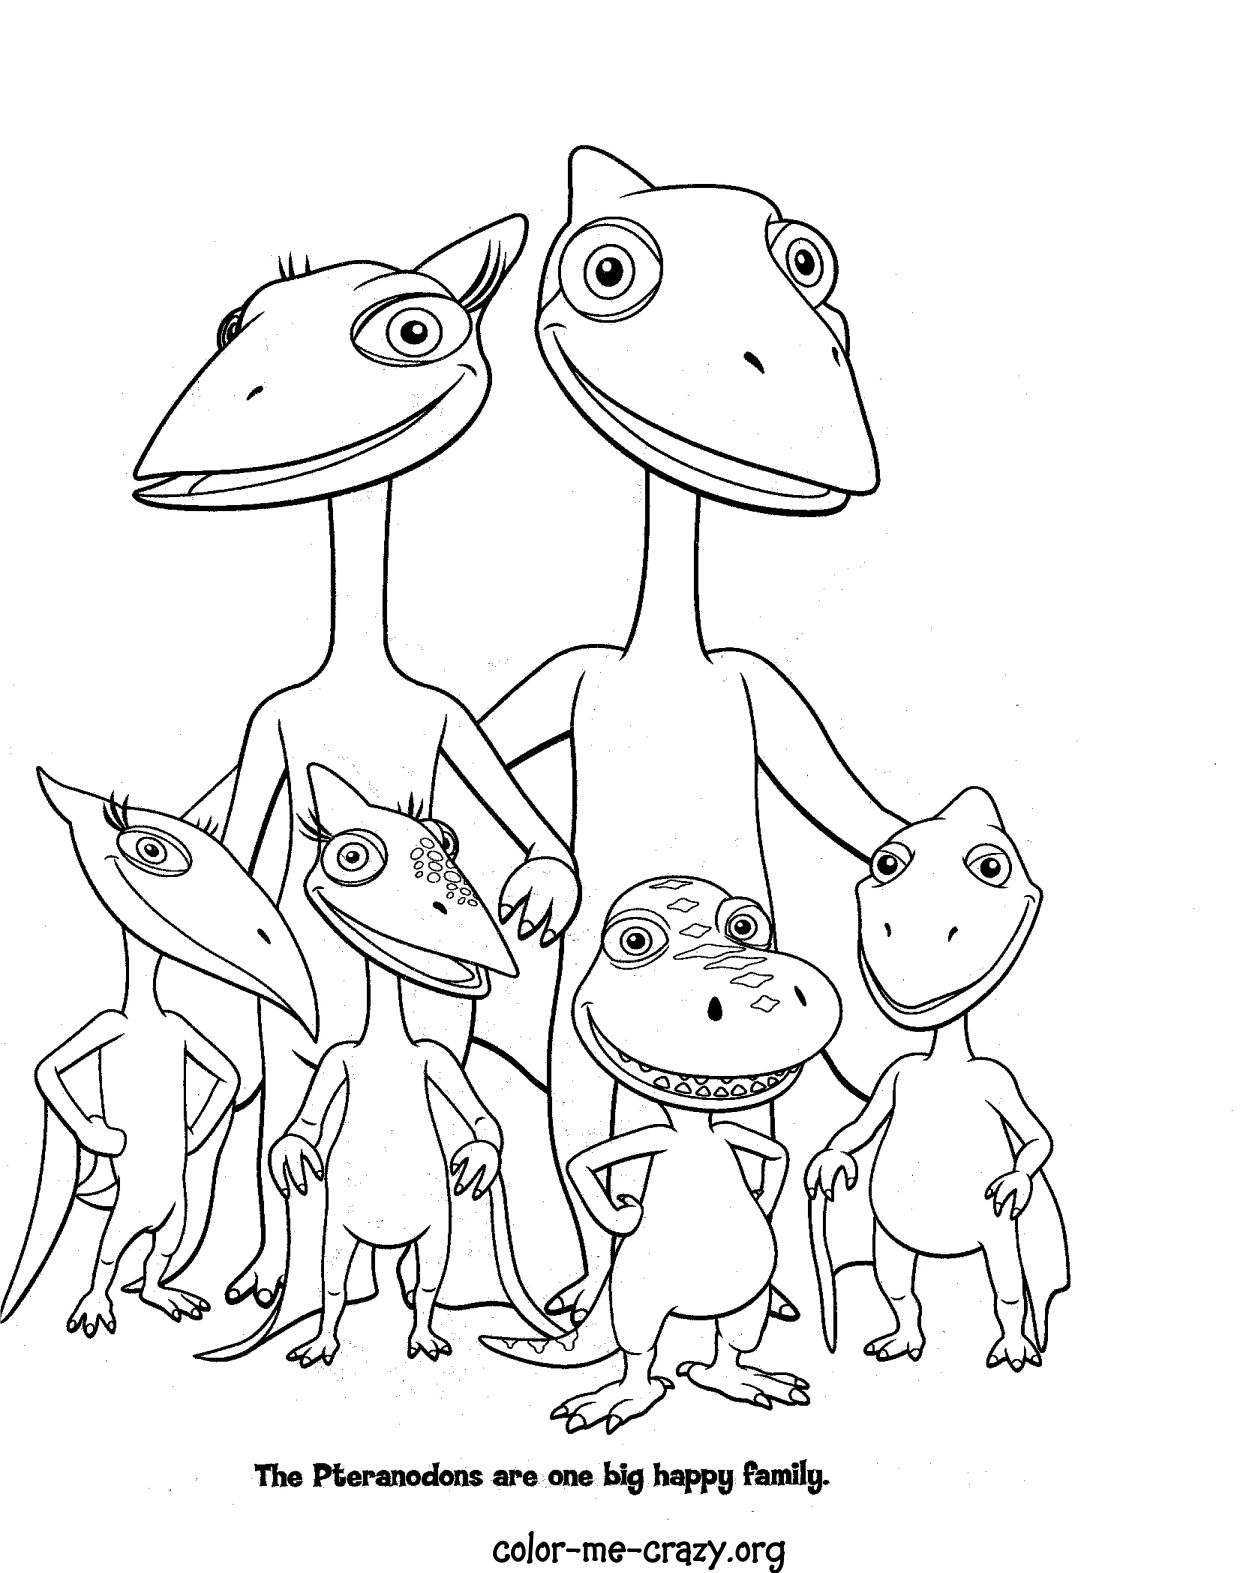 dinosaur train coloring pages dinosaurs pictures and facts. Black Bedroom Furniture Sets. Home Design Ideas